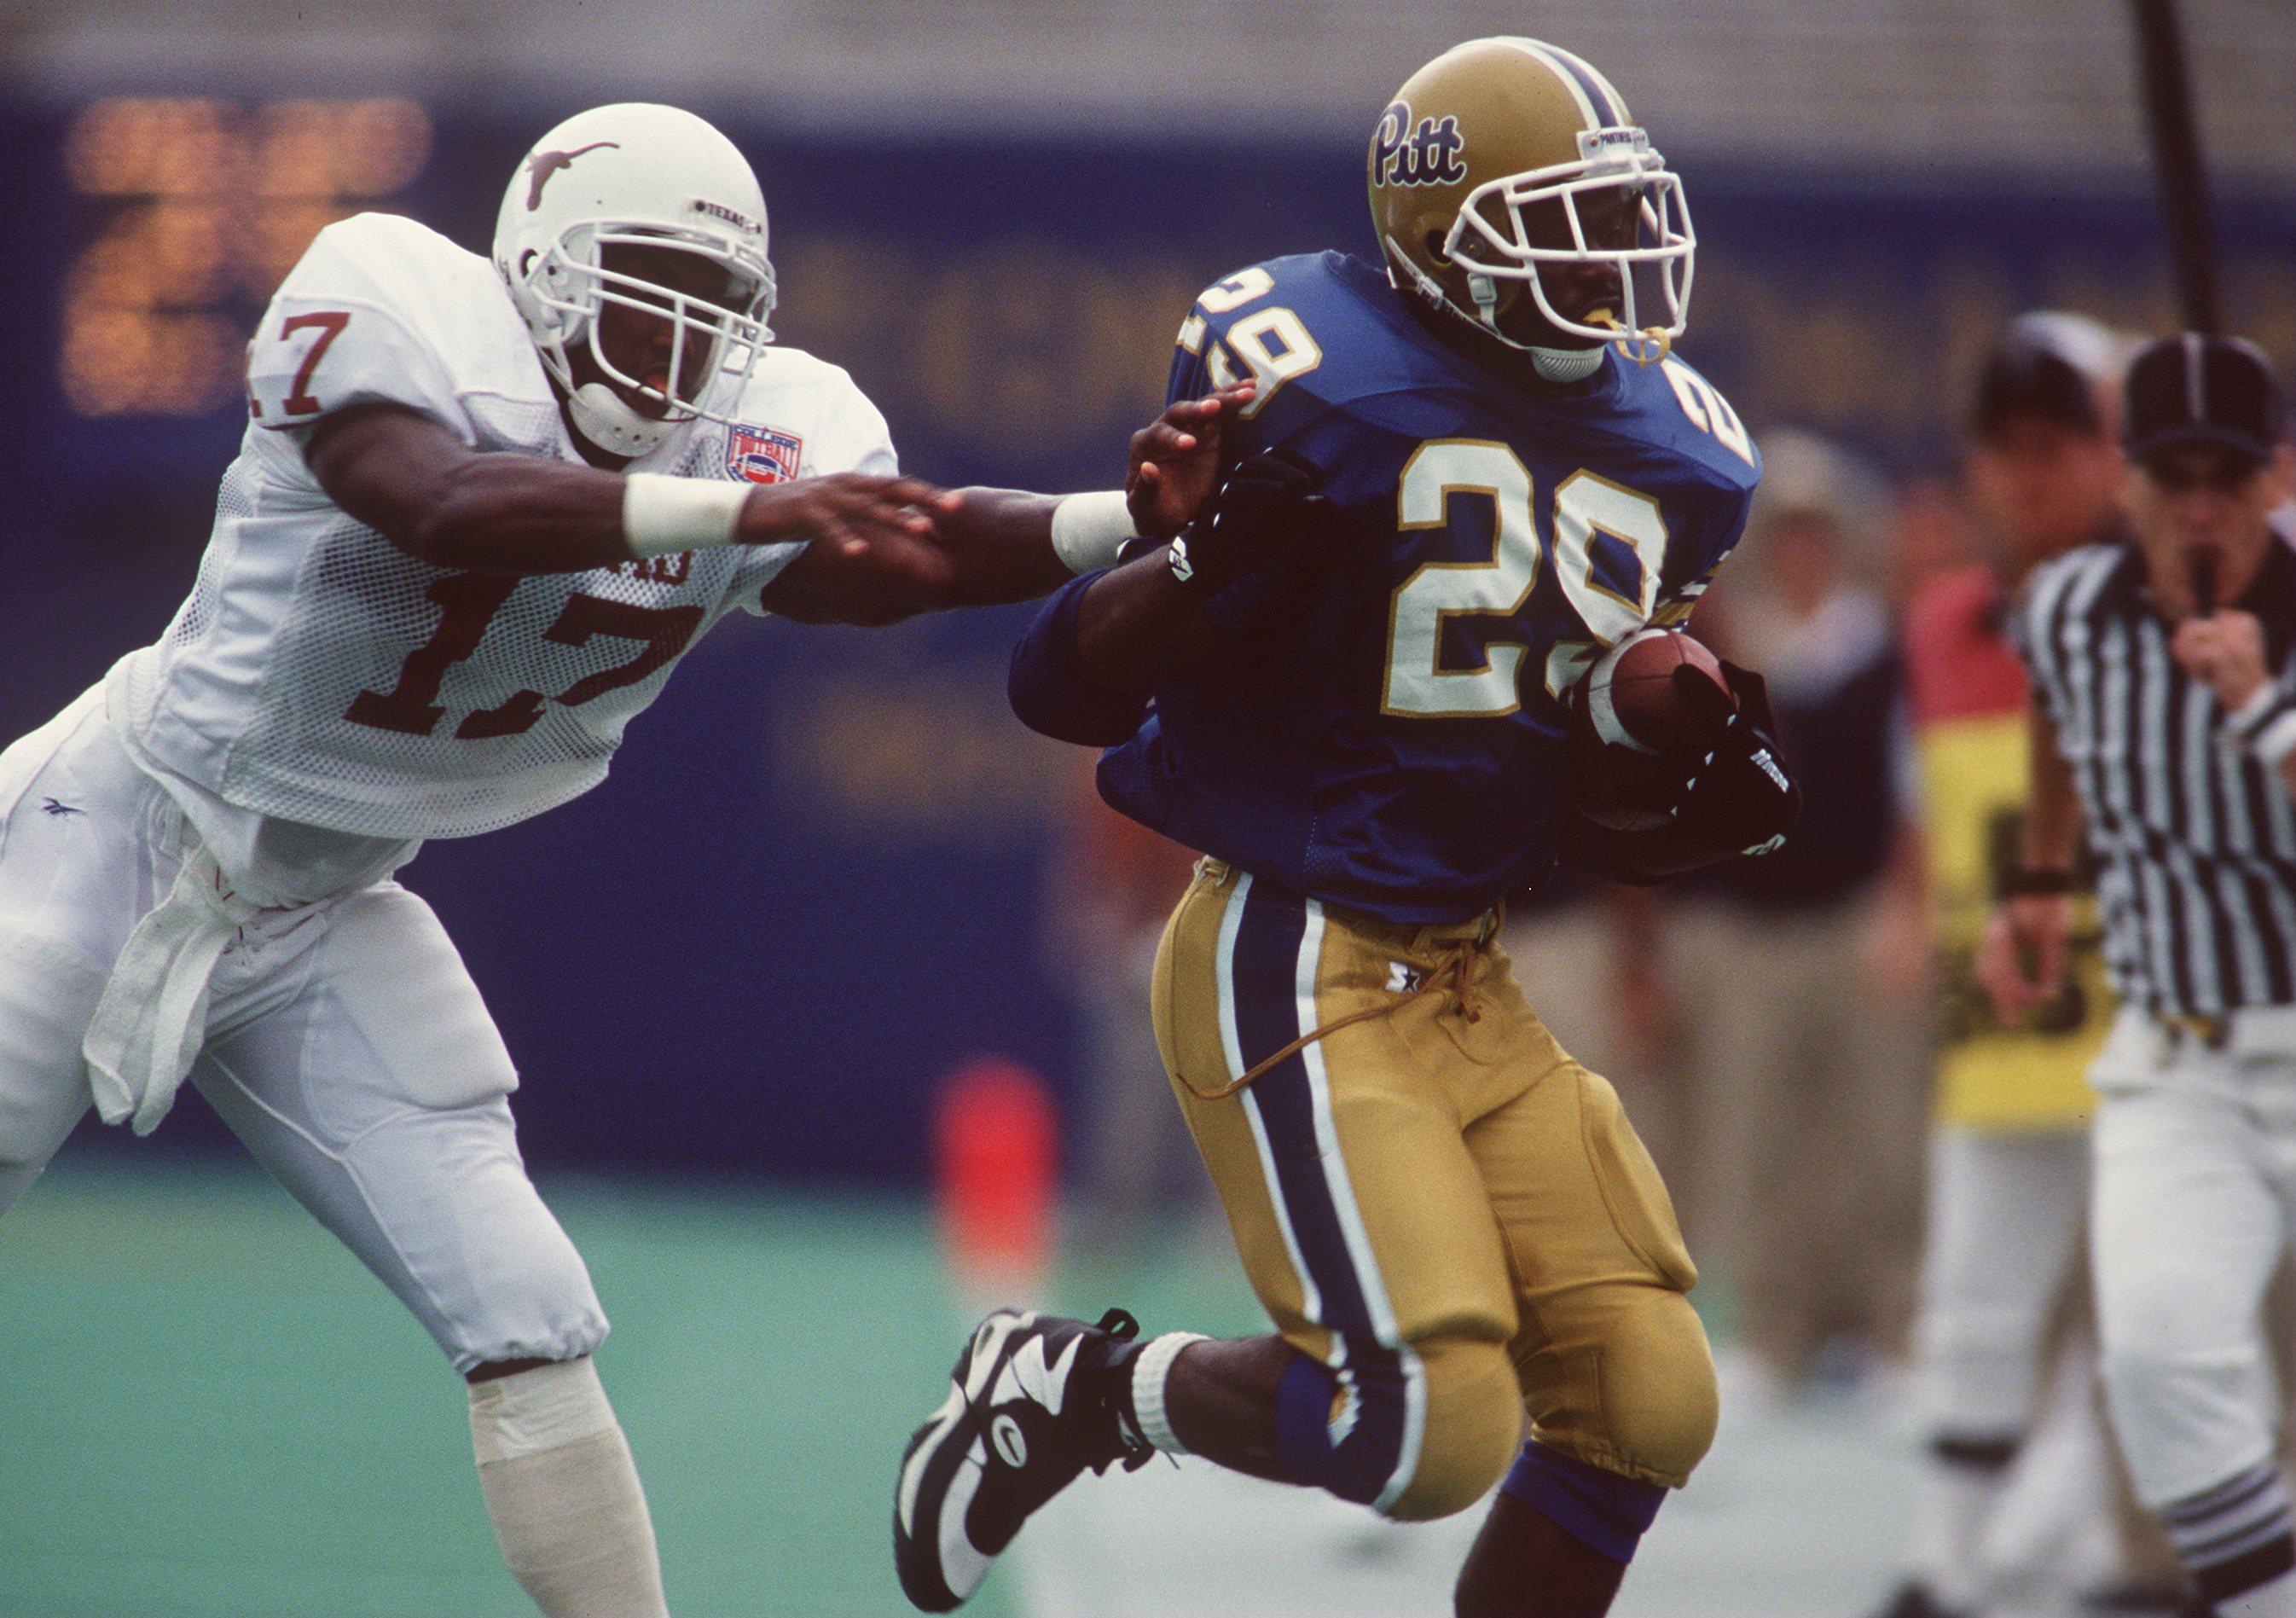 3 Sep 1994: UNIVERSITY OF PITTSBURGH RUNNING BACK CURTIS MARTIN TRIES TO AVOID A LONGHORNS DEFENDER DURING THE PANTHERS 30-28 LOSS TO THE UNIVERSITY OF TEXAS AT TEXAS MEMORIAL STADIUM IN AUSTIN, TEXAS.